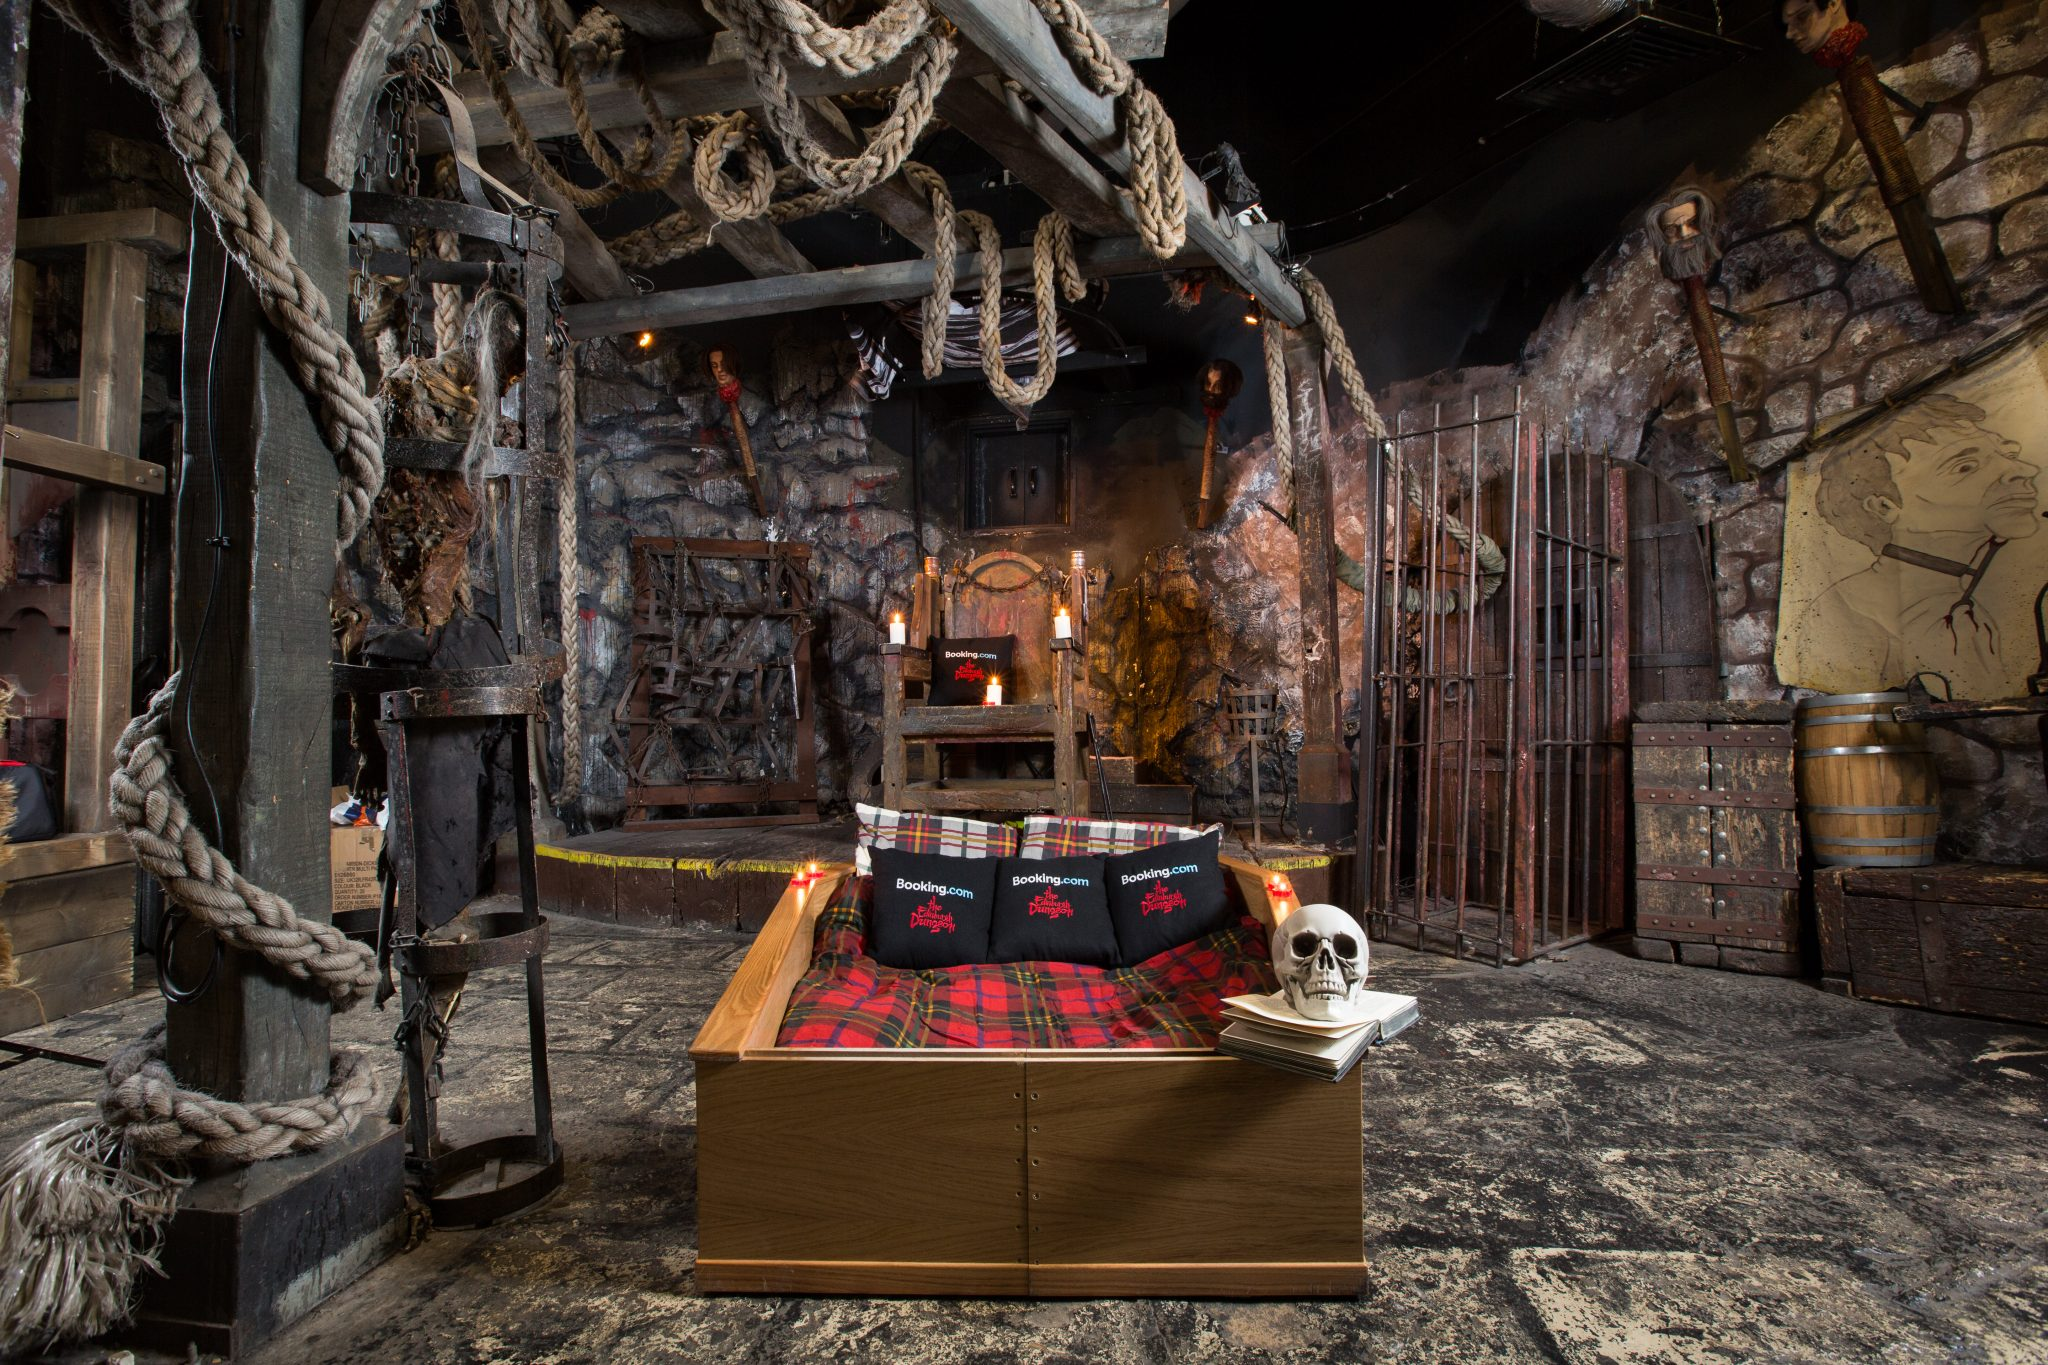 """Booking.com are collaborating with the Edinburgh Dungeon to offer a """"Sceance Sleepover – conjure the dead before going to bed"""" for Halloween, whereby guests will be able to book an exclusive coffin overnight stay at the Dungeons on Booking.com.  The stay will commence with the last Dungeon tour of the day and includes a Sceance session complete with the Dungeon's resident Medium and Ouija board, to conjure spooky goings on with the ghostly White Lady. After the festivities have finished, guests will climb into their Coffin bed for the night..Photo credit : Robert Perry/PA Wire"""